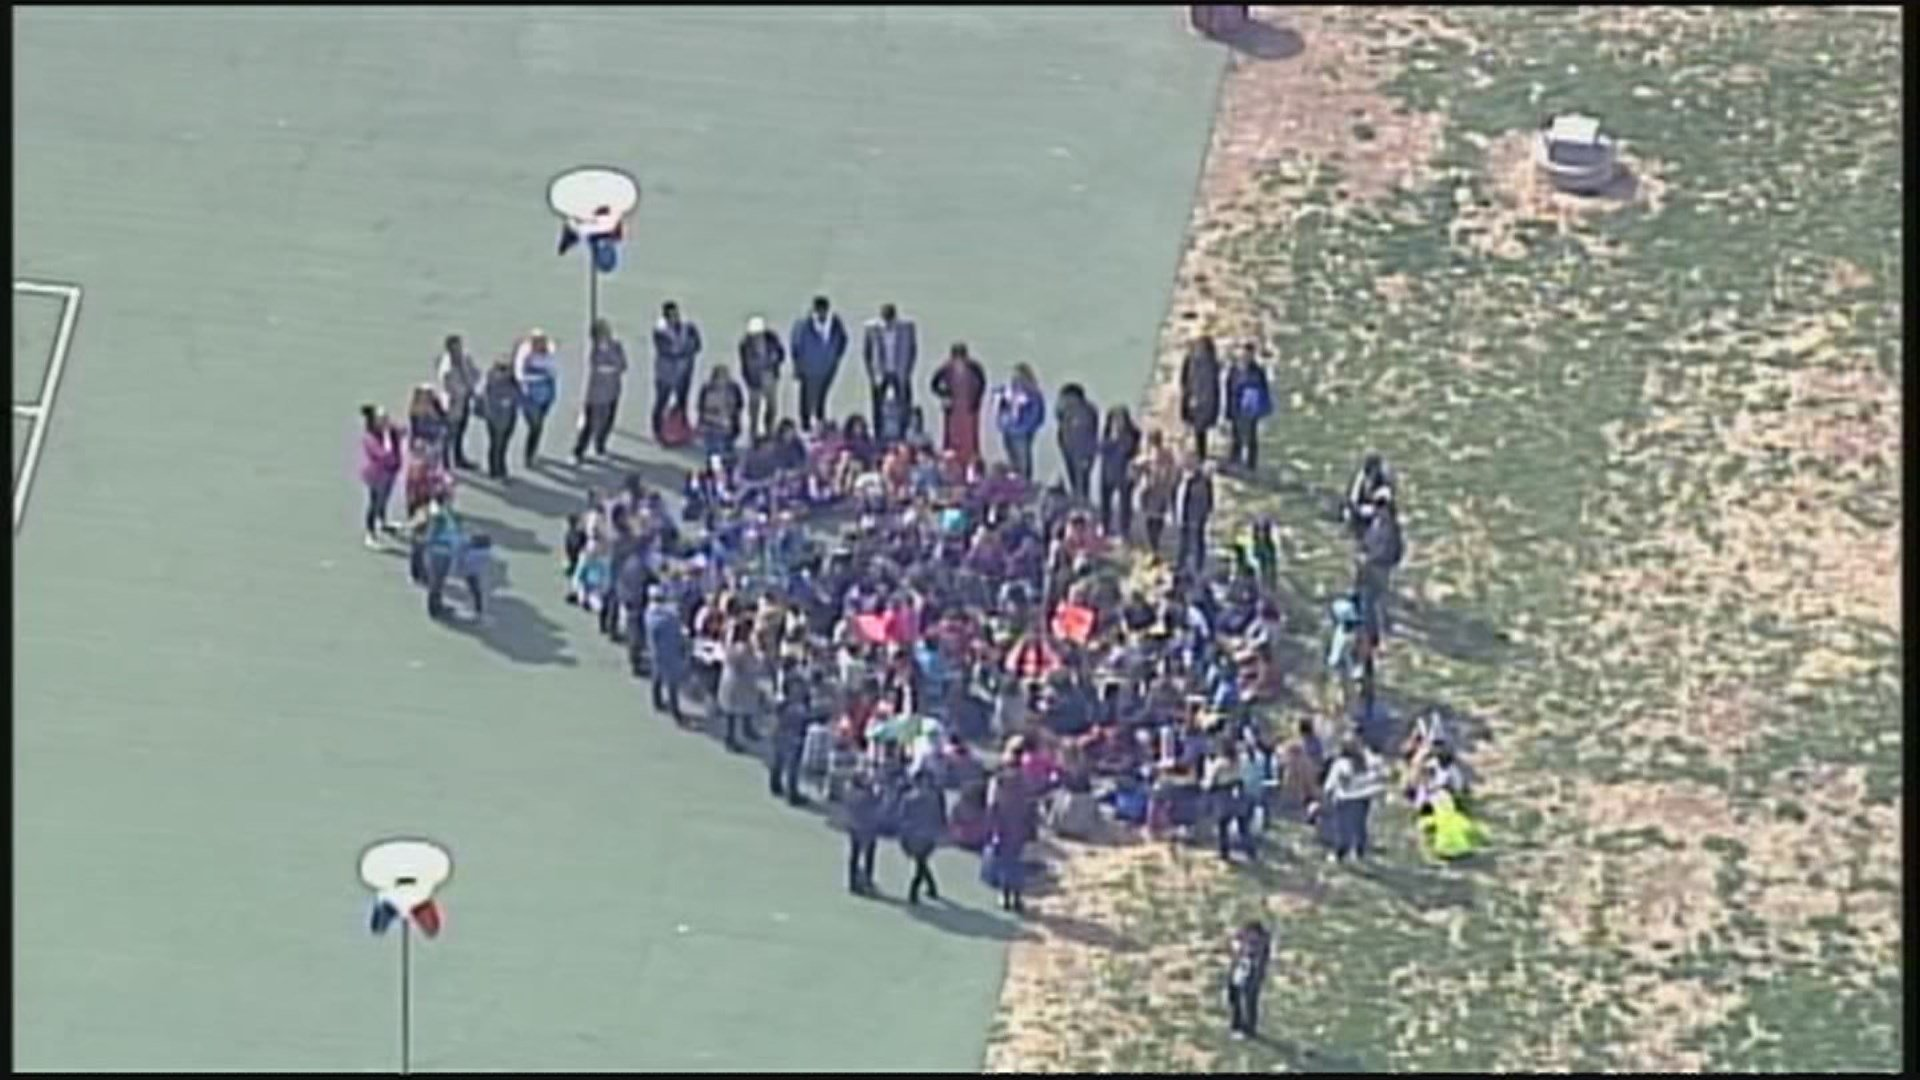 Several of those demonstrations were in the Shawnee Mission School District, and many students and parents were upset about how they were handled. (KCTV5)